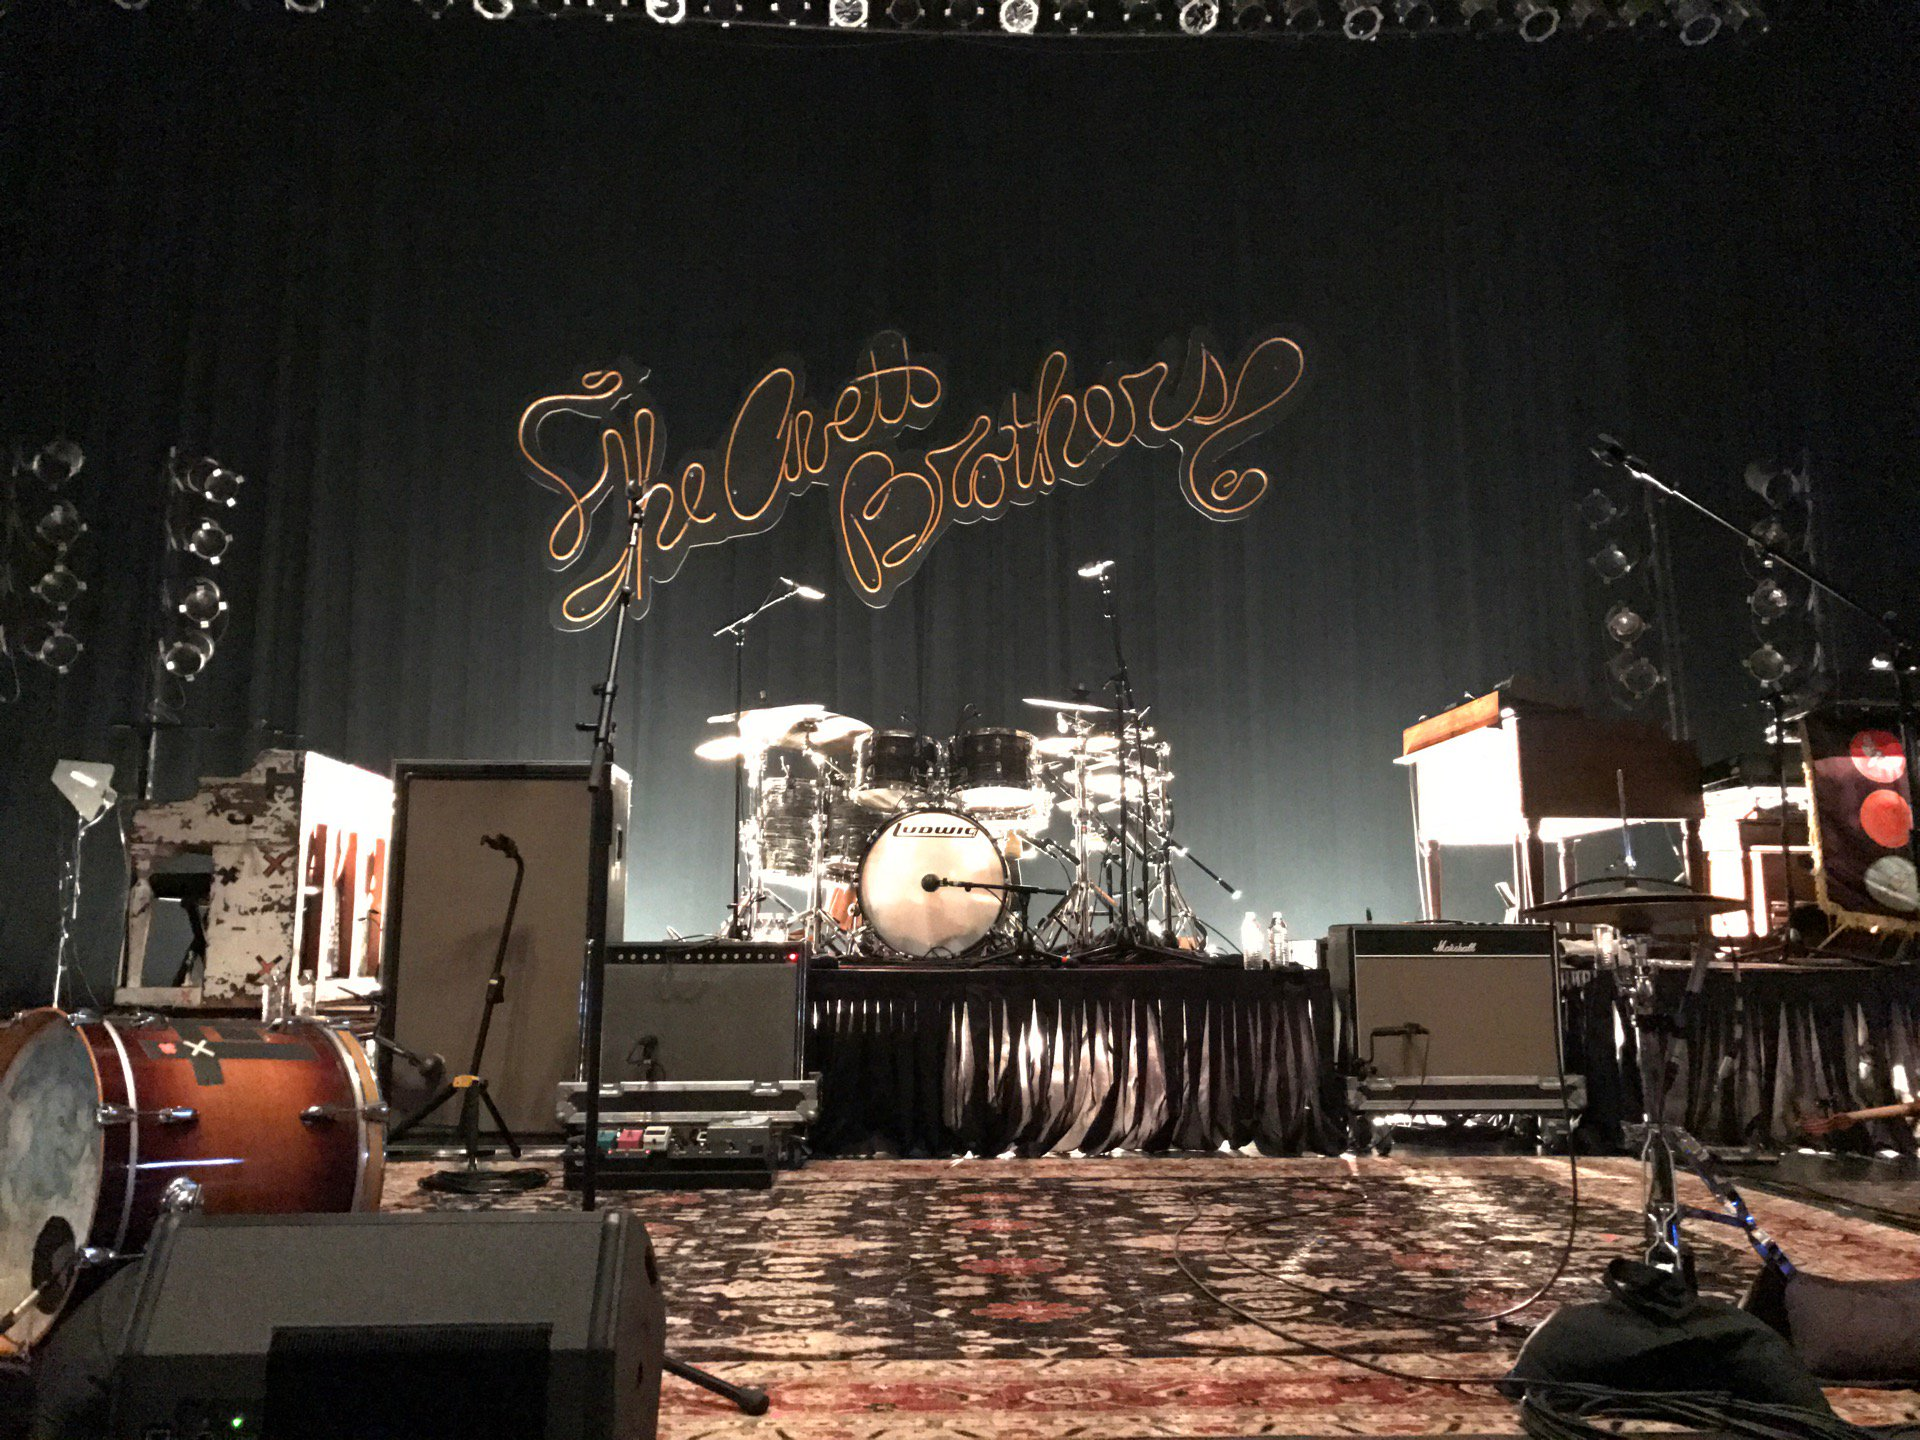 RT @theRab: Middle middle rail (at @TheNationalRva for The Avett Brothers in Richmond, VA) https://t.co/kuHIt6KZoq https://t.co/4SFvnEzjHv